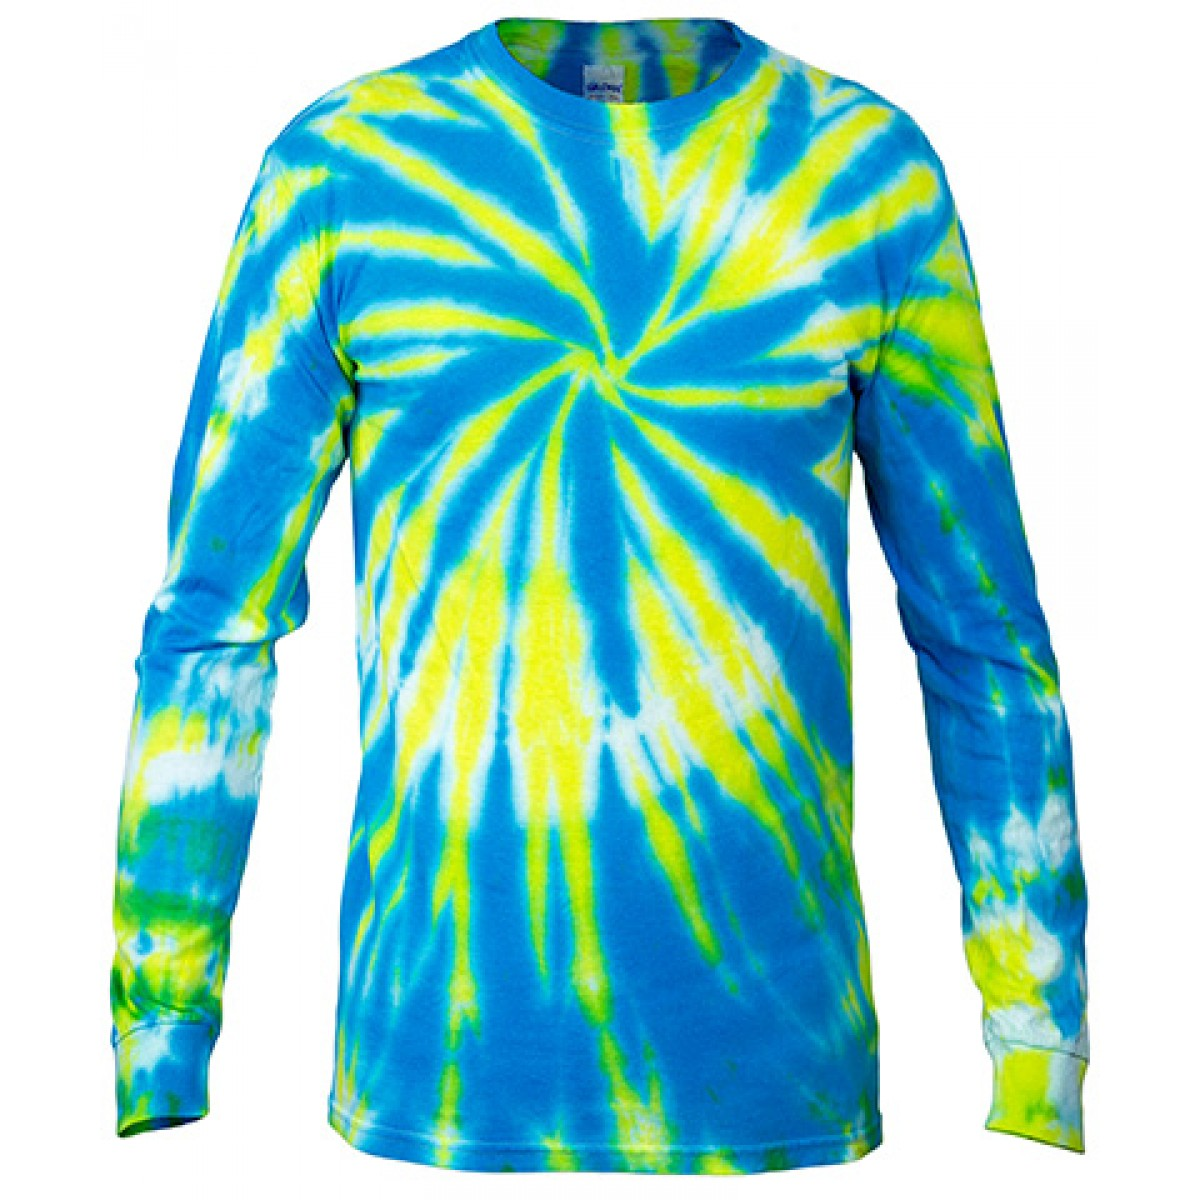 Multi Color Tie-Dye Long Sleeve Shirt -Blue-3XL